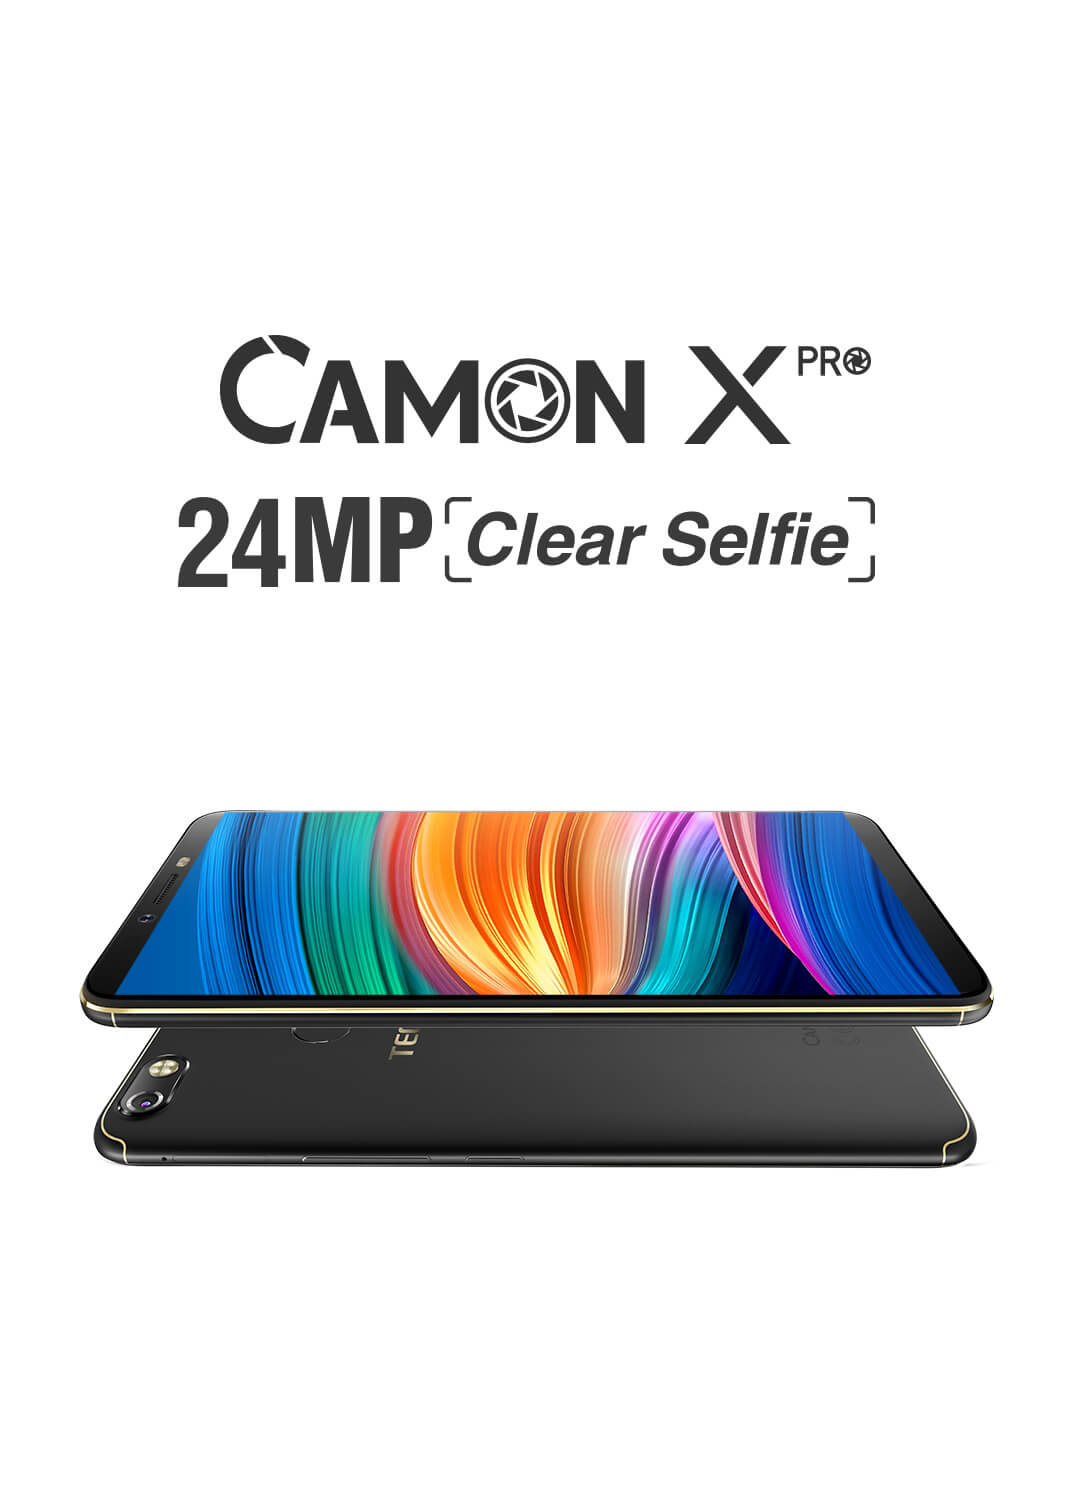 Join the selfie Generation with Tecno Camon x pro